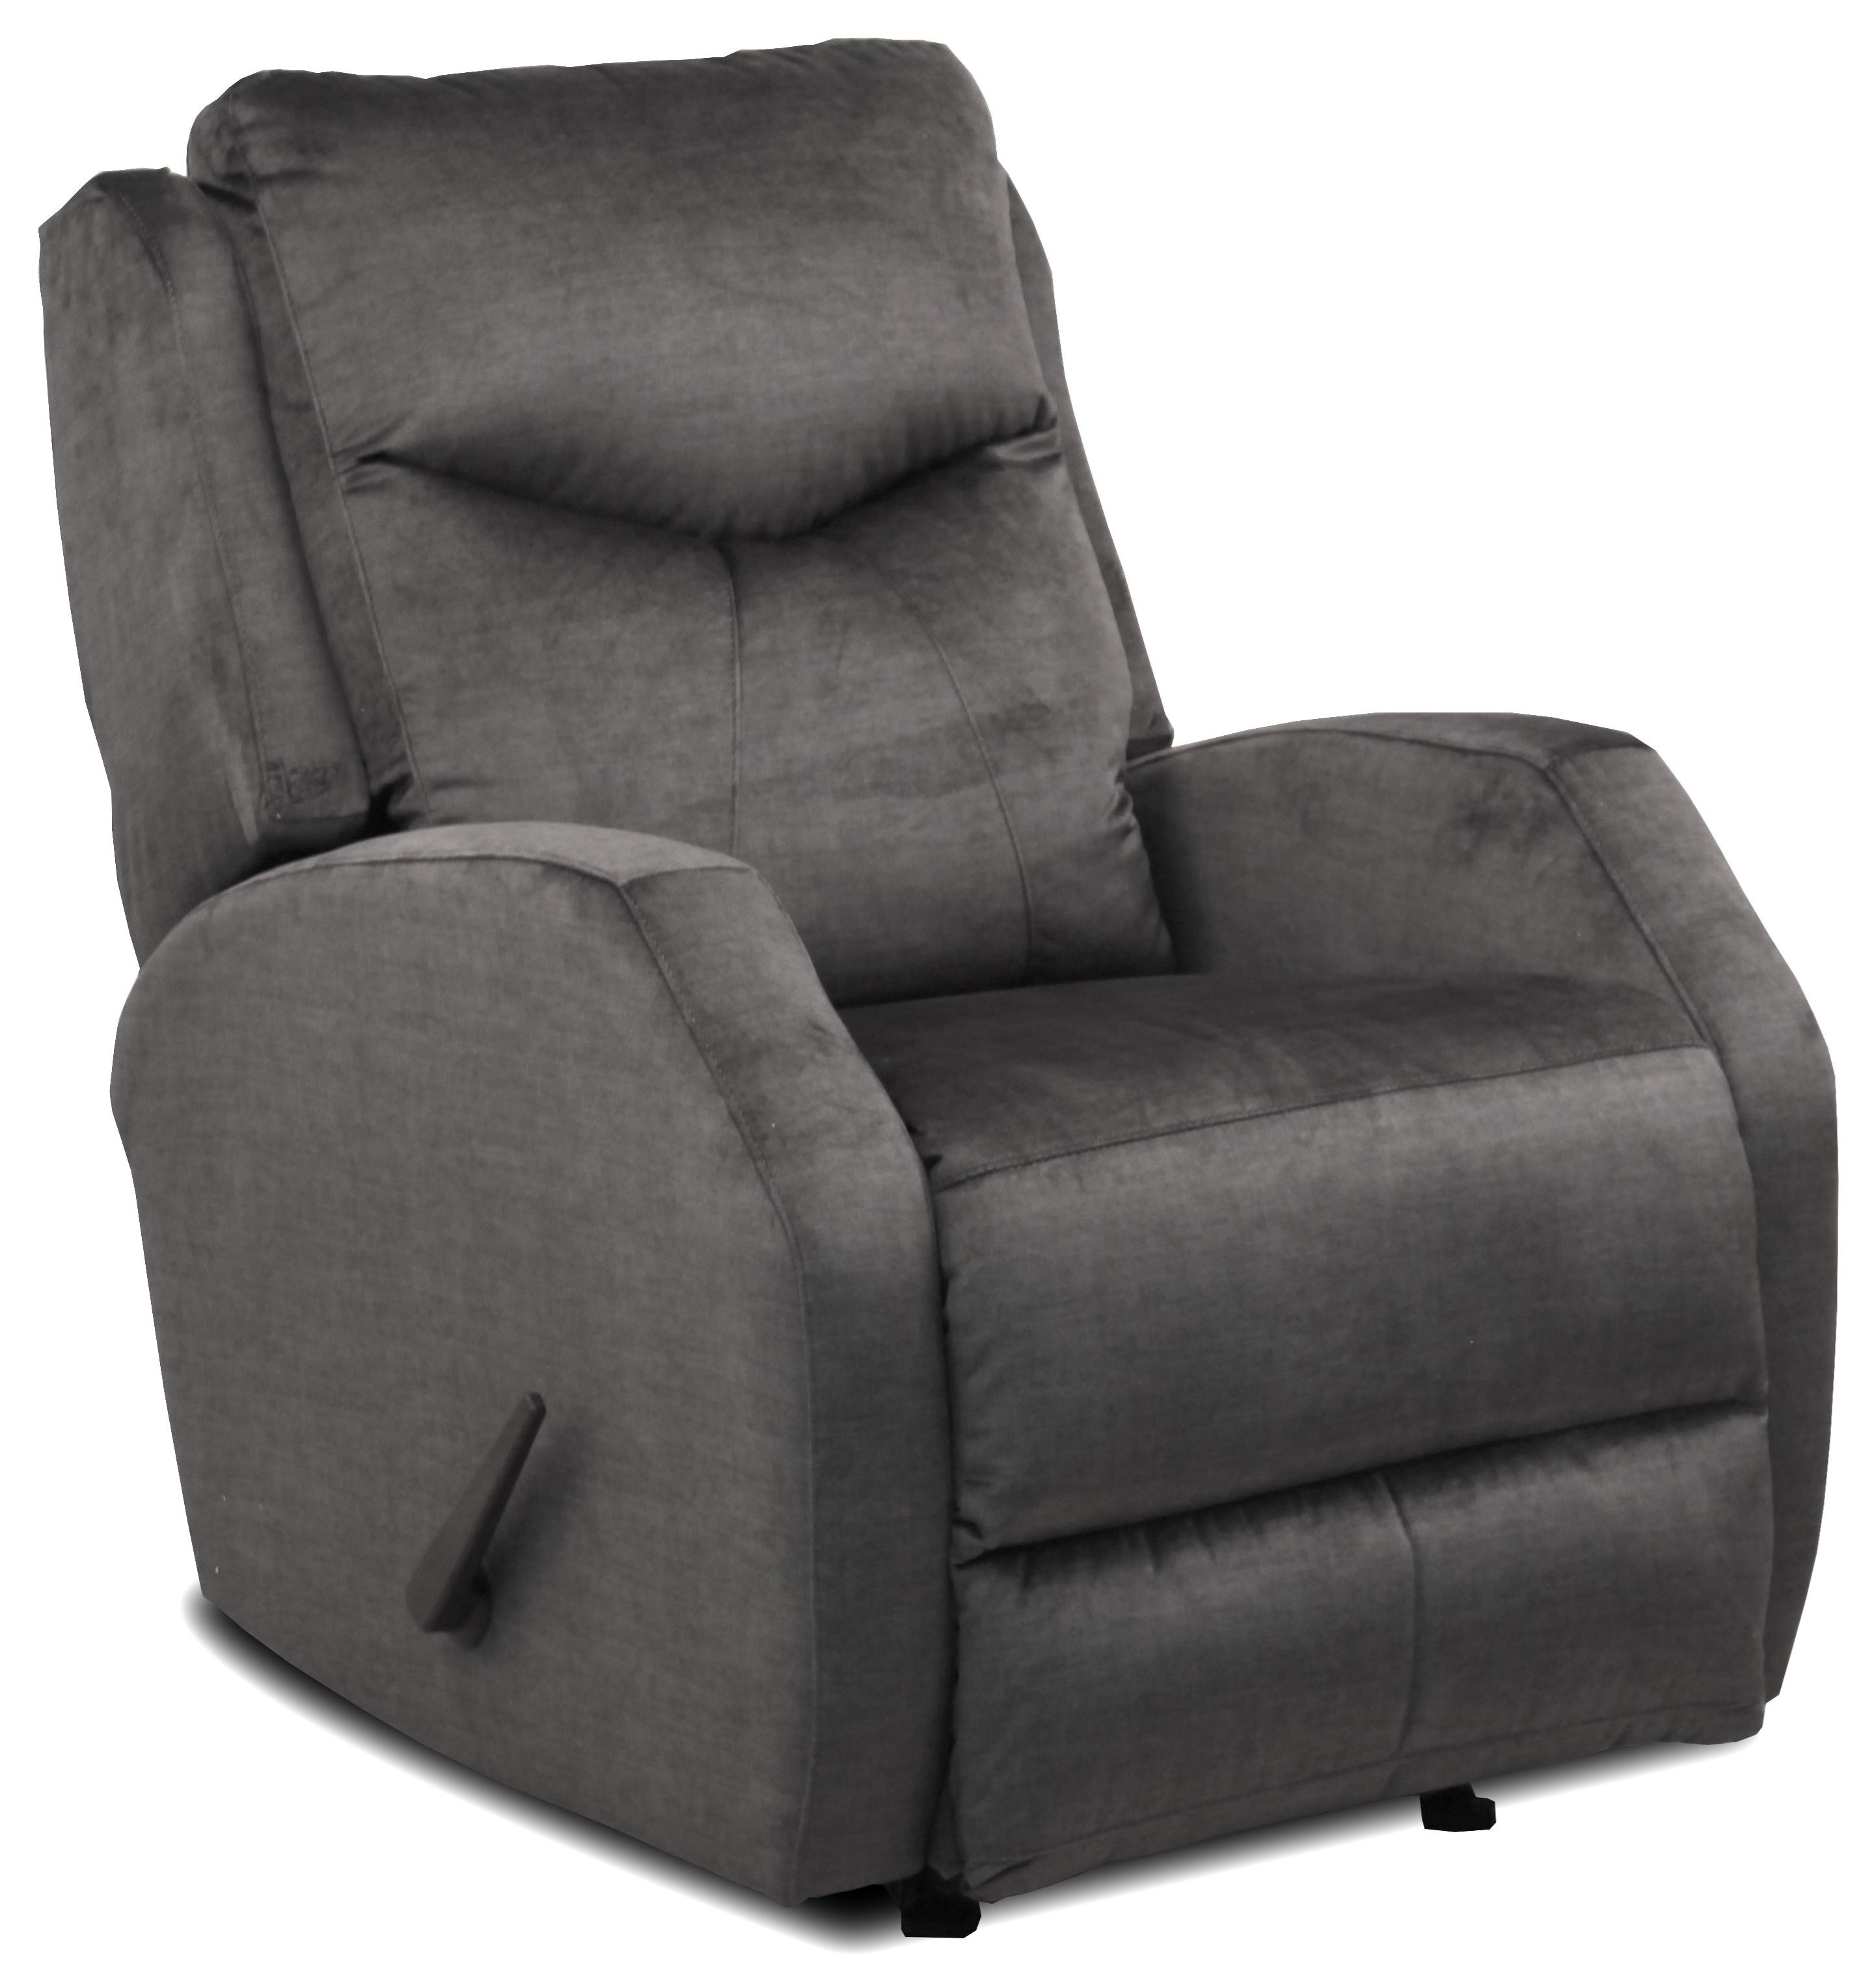 Tip Top Rocker Recliner by Southern Motion at Ruby Gordon Home